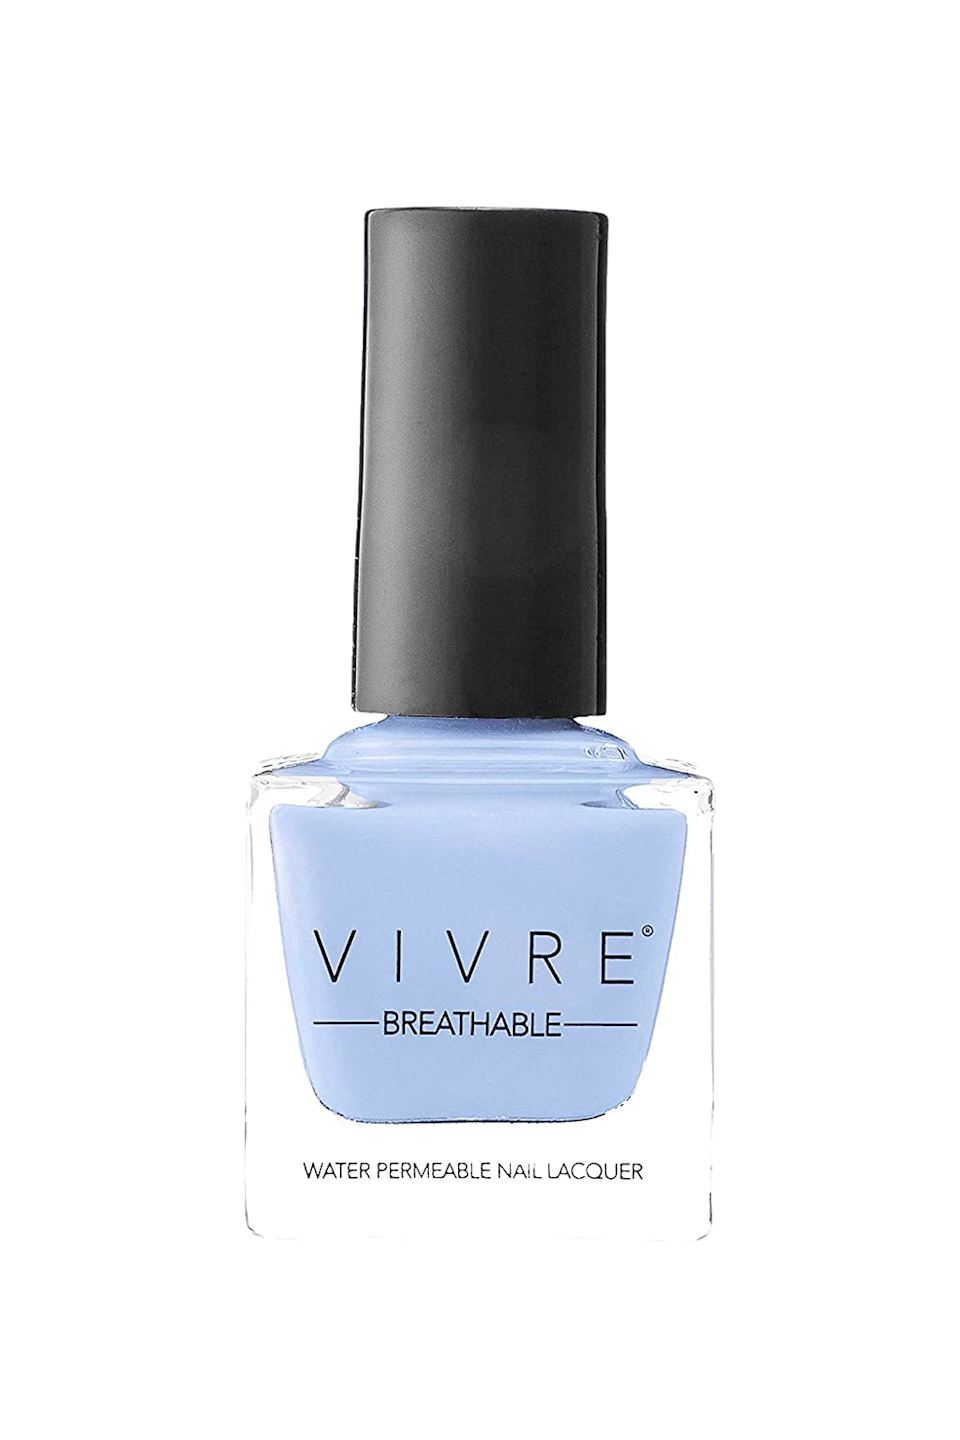 "<p><strong>Ferris</strong></p><p>vivrecosmetics.com</p><p><strong>$12.99</strong></p><p><a href=""https://vivrecosmetics.com/collections/breathable-nail-polish/products/ferris-wheel-affair"" rel=""nofollow noopener"" target=""_blank"" data-ylk=""slk:Shop Now"" class=""link rapid-noclick-resp"">Shop Now</a></p><p>Another Halal-certified breathable nail polish collection, <strong>Vivre Cosmetics' polishes are quick-drying, long-lasting, and even spiked with vitamins C and B5</strong>. I'm personally a fan of the shade <a href=""https://vivrecosmetics.com/collections/breathable-nail-polish/products/ferris-wheel-affair"" rel=""nofollow noopener"" target=""_blank"" data-ylk=""slk:Ferris Wheel Affair"" class=""link rapid-noclick-resp"">Ferris Wheel Affair</a> (a creamy powder blue, pictured here), though <a href=""https://vivrecosmetics.com/collections/breathable-nail-polish/products/copy-of-fallin-for-you"" rel=""nofollow noopener"" target=""_blank"" data-ylk=""slk:Under the Stars"" class=""link rapid-noclick-resp"">Under the Stars</a> (a bright purple) is just as fun.</p>"